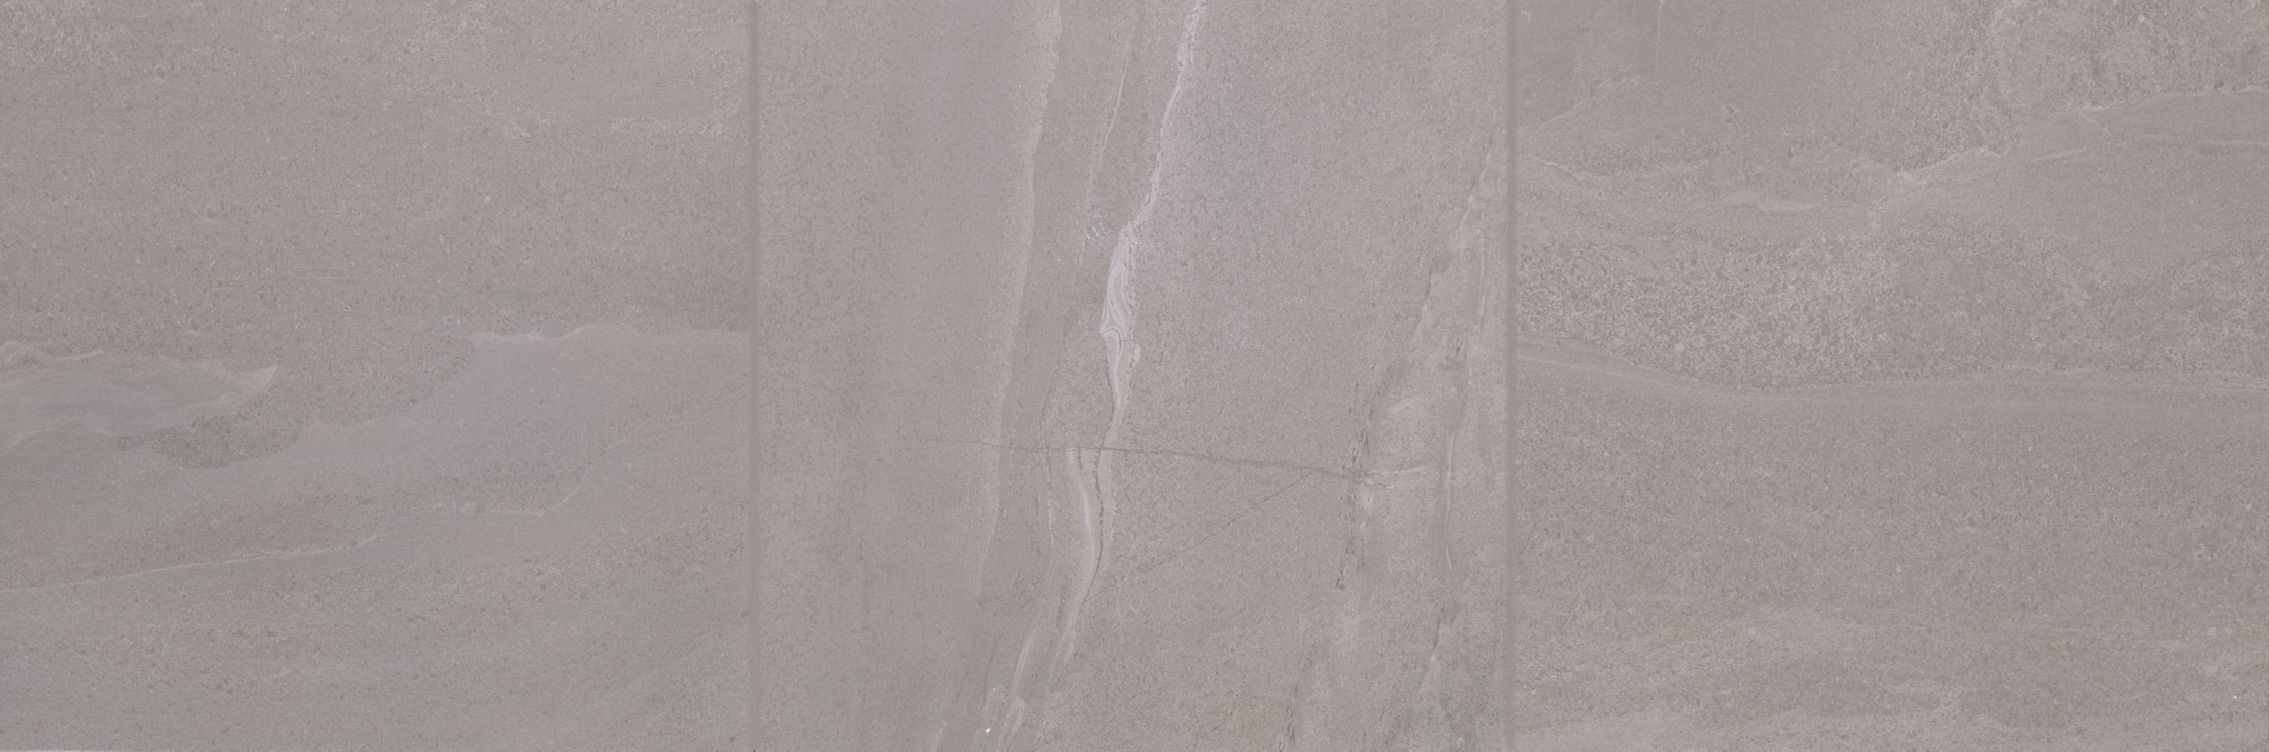 Granite Falls Luxury Gray Polished